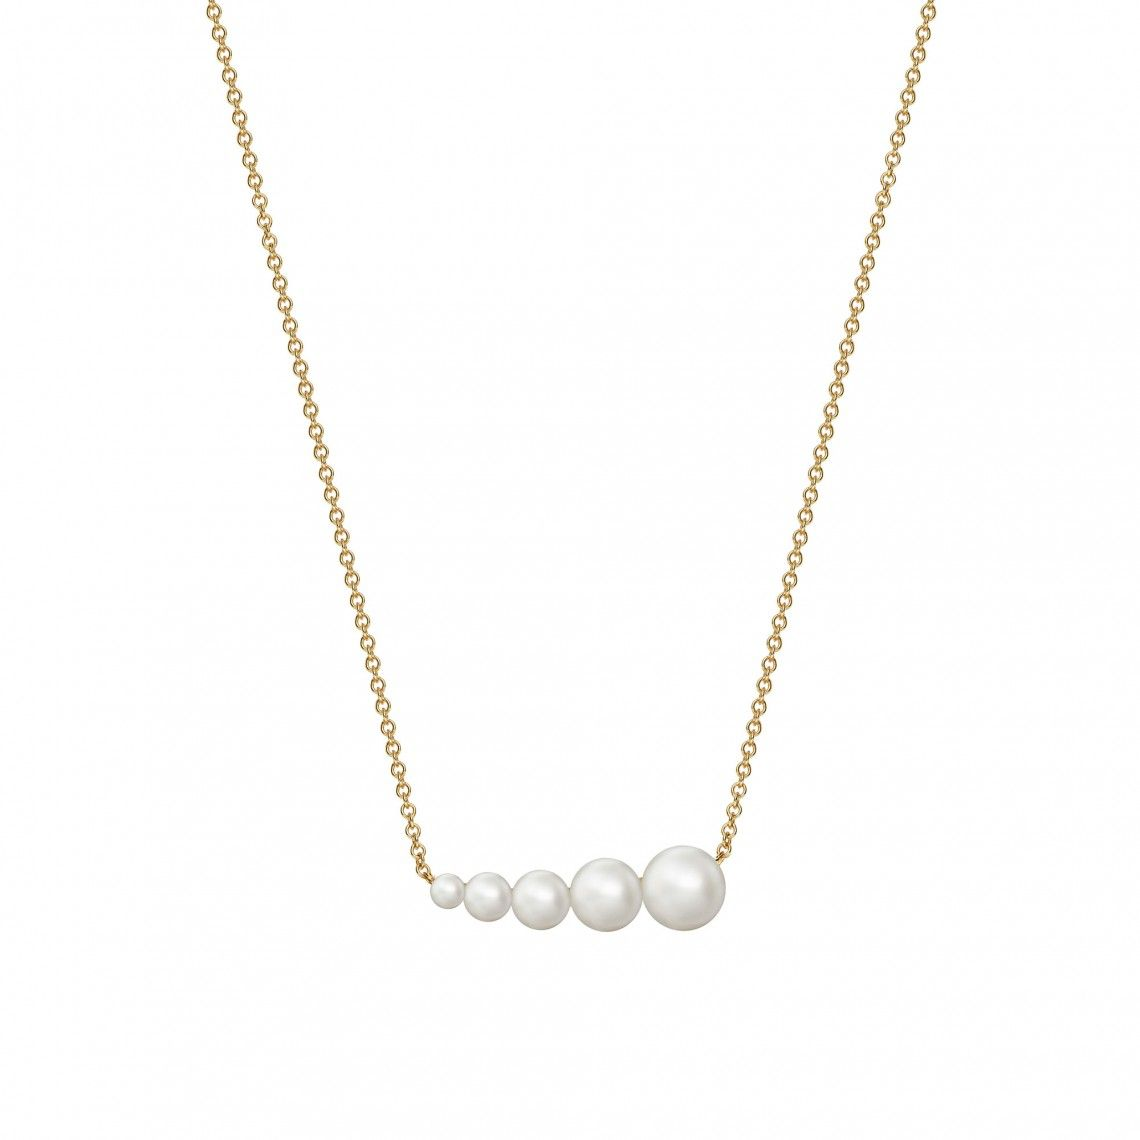 Birks 18K Yellow Gold   Pearl Gold Necklace 450011426281